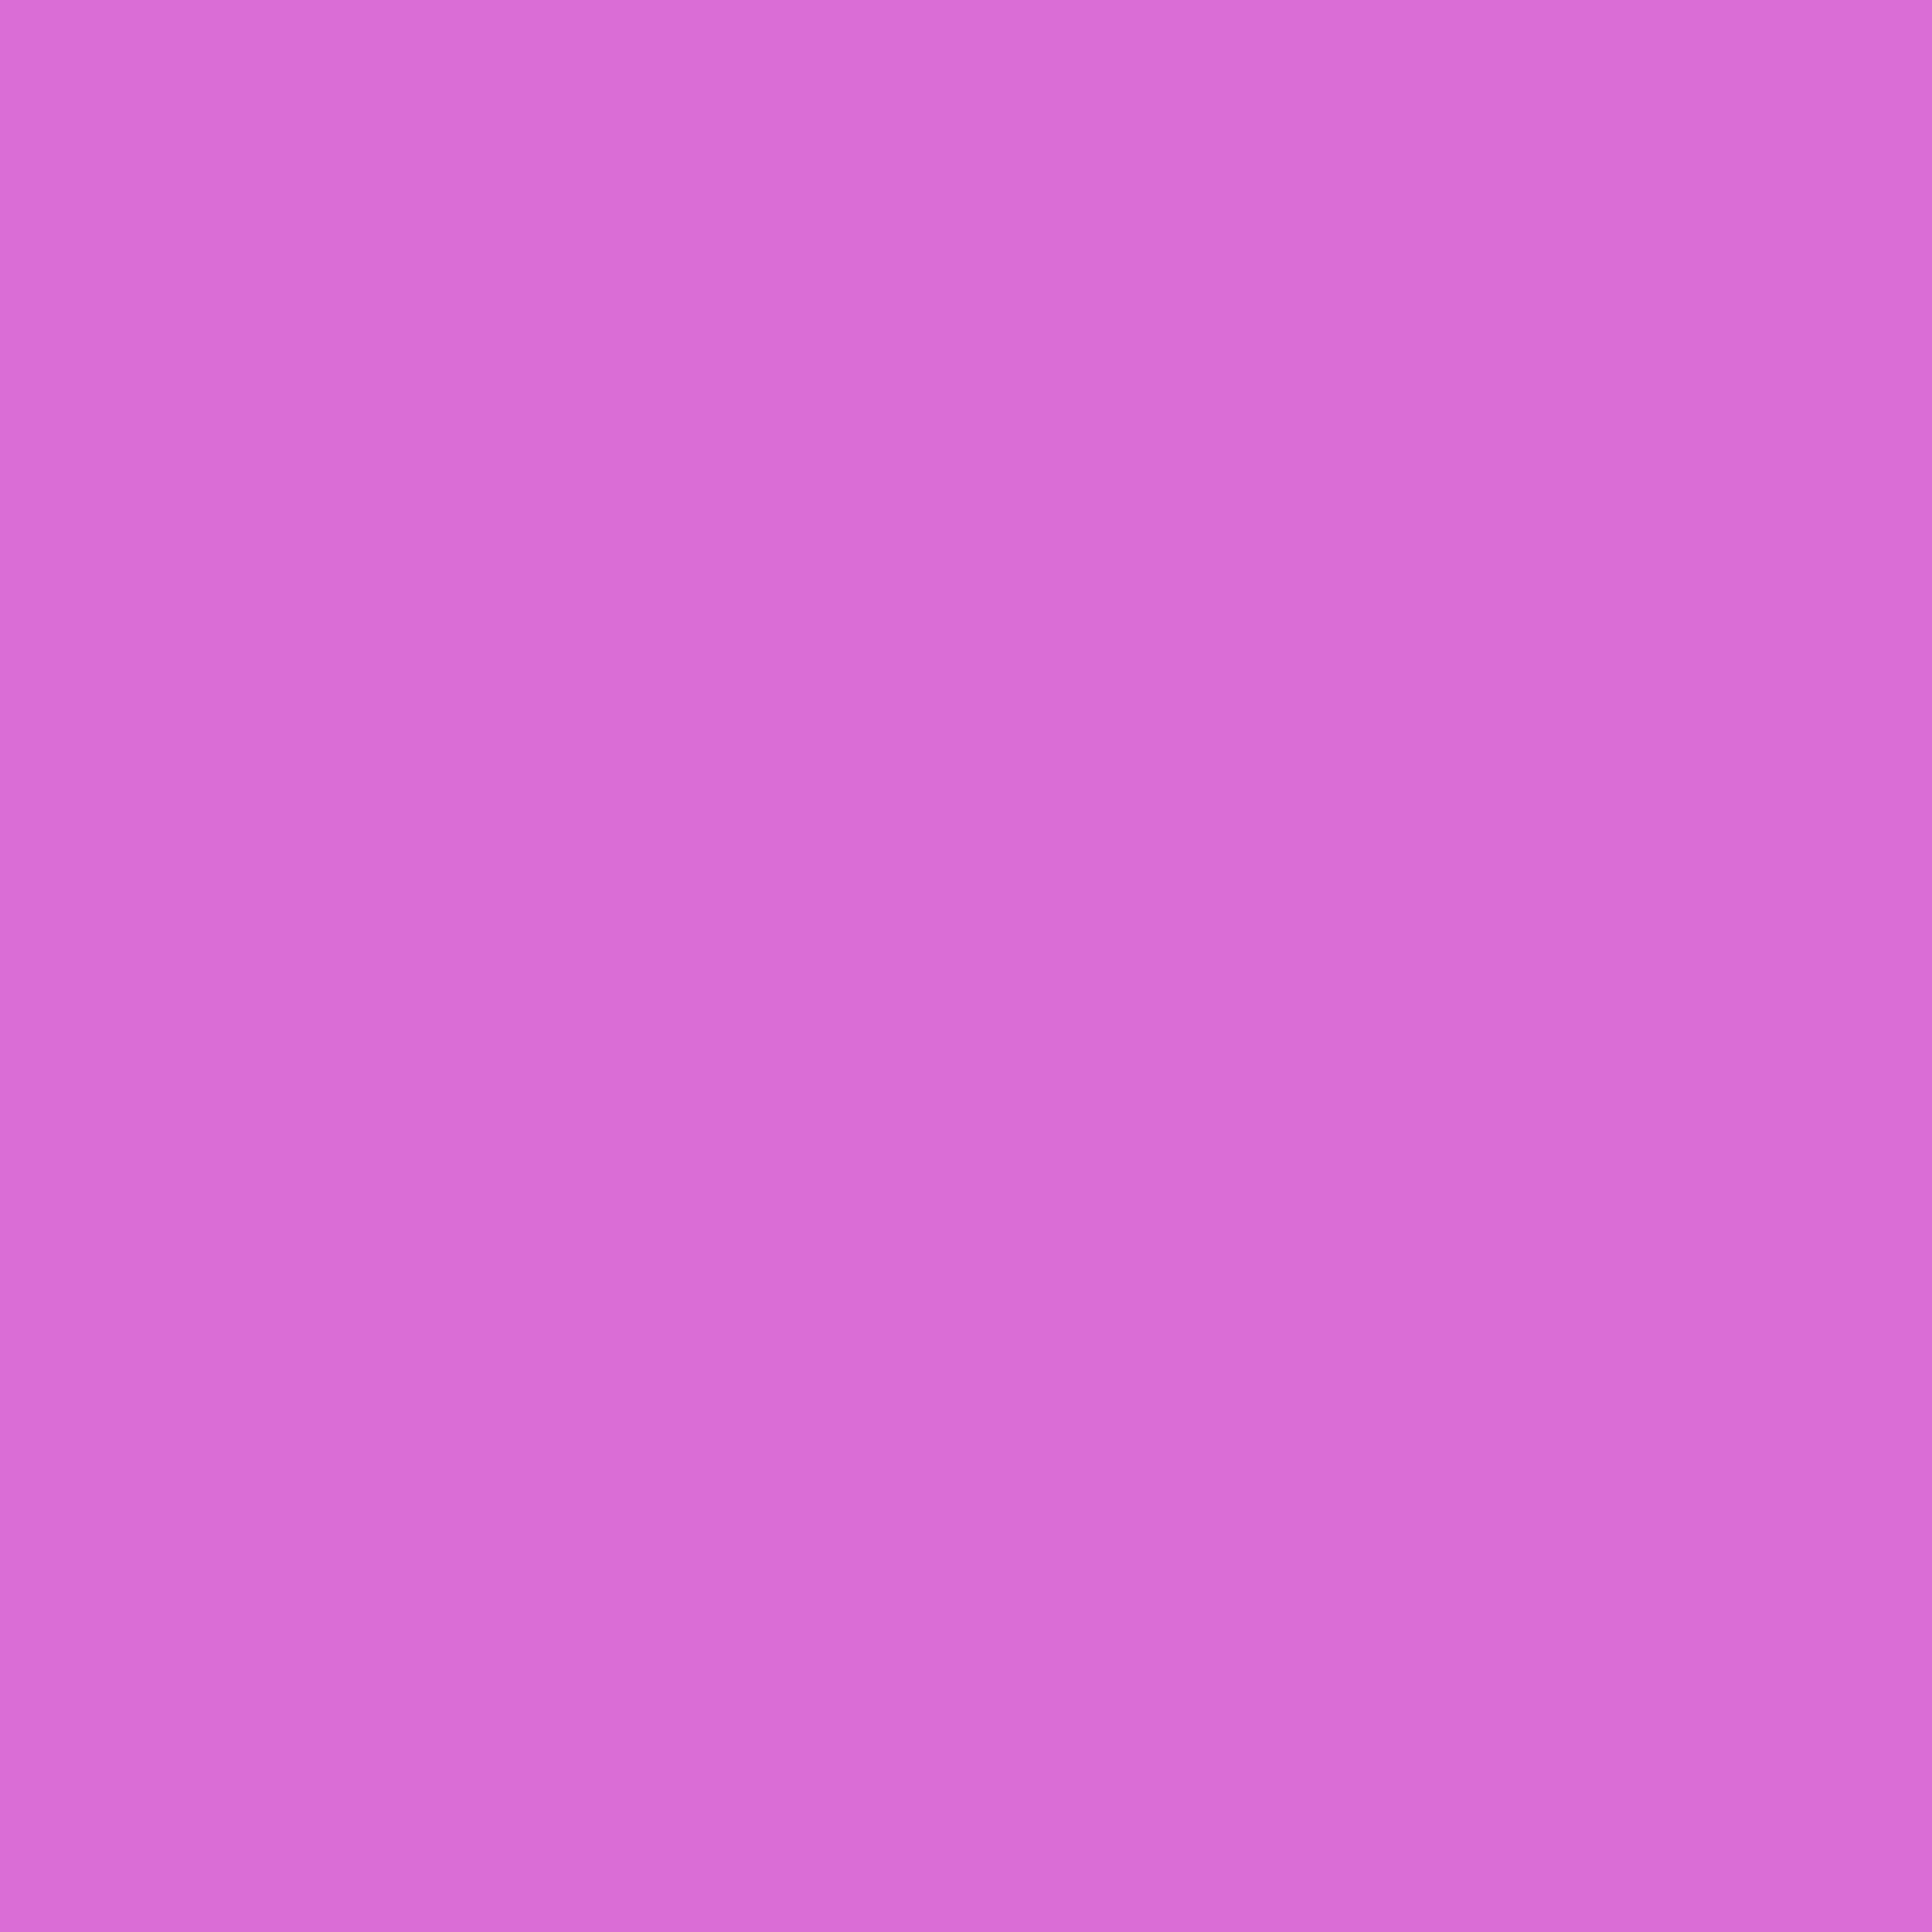 3600x3600 Orchid Solid Color Background